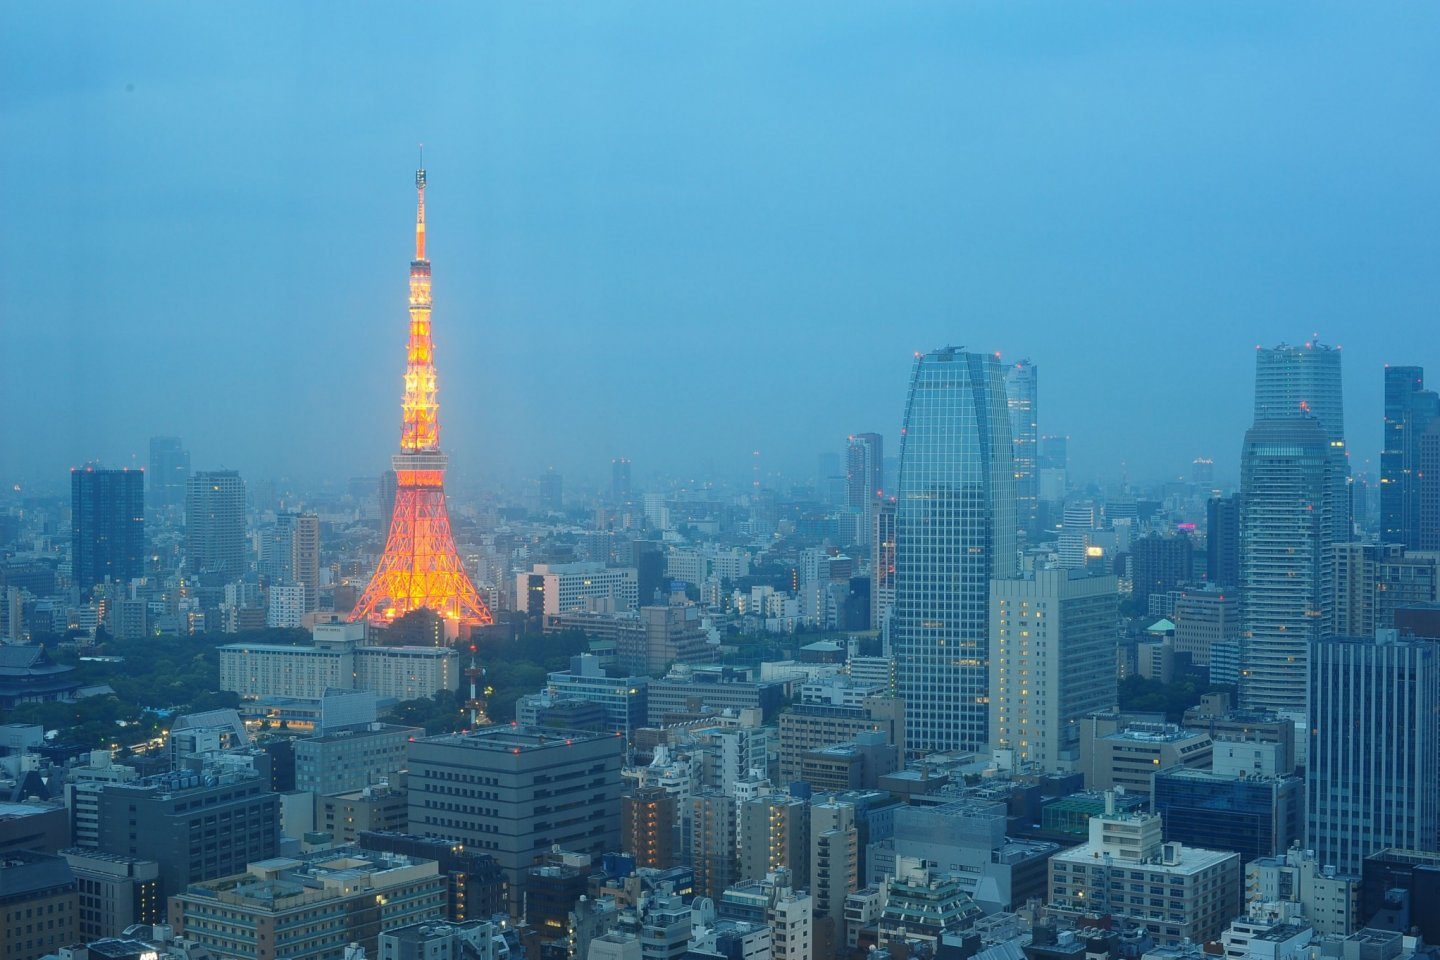 Tokyo Tower view from the hotel room early in the morning